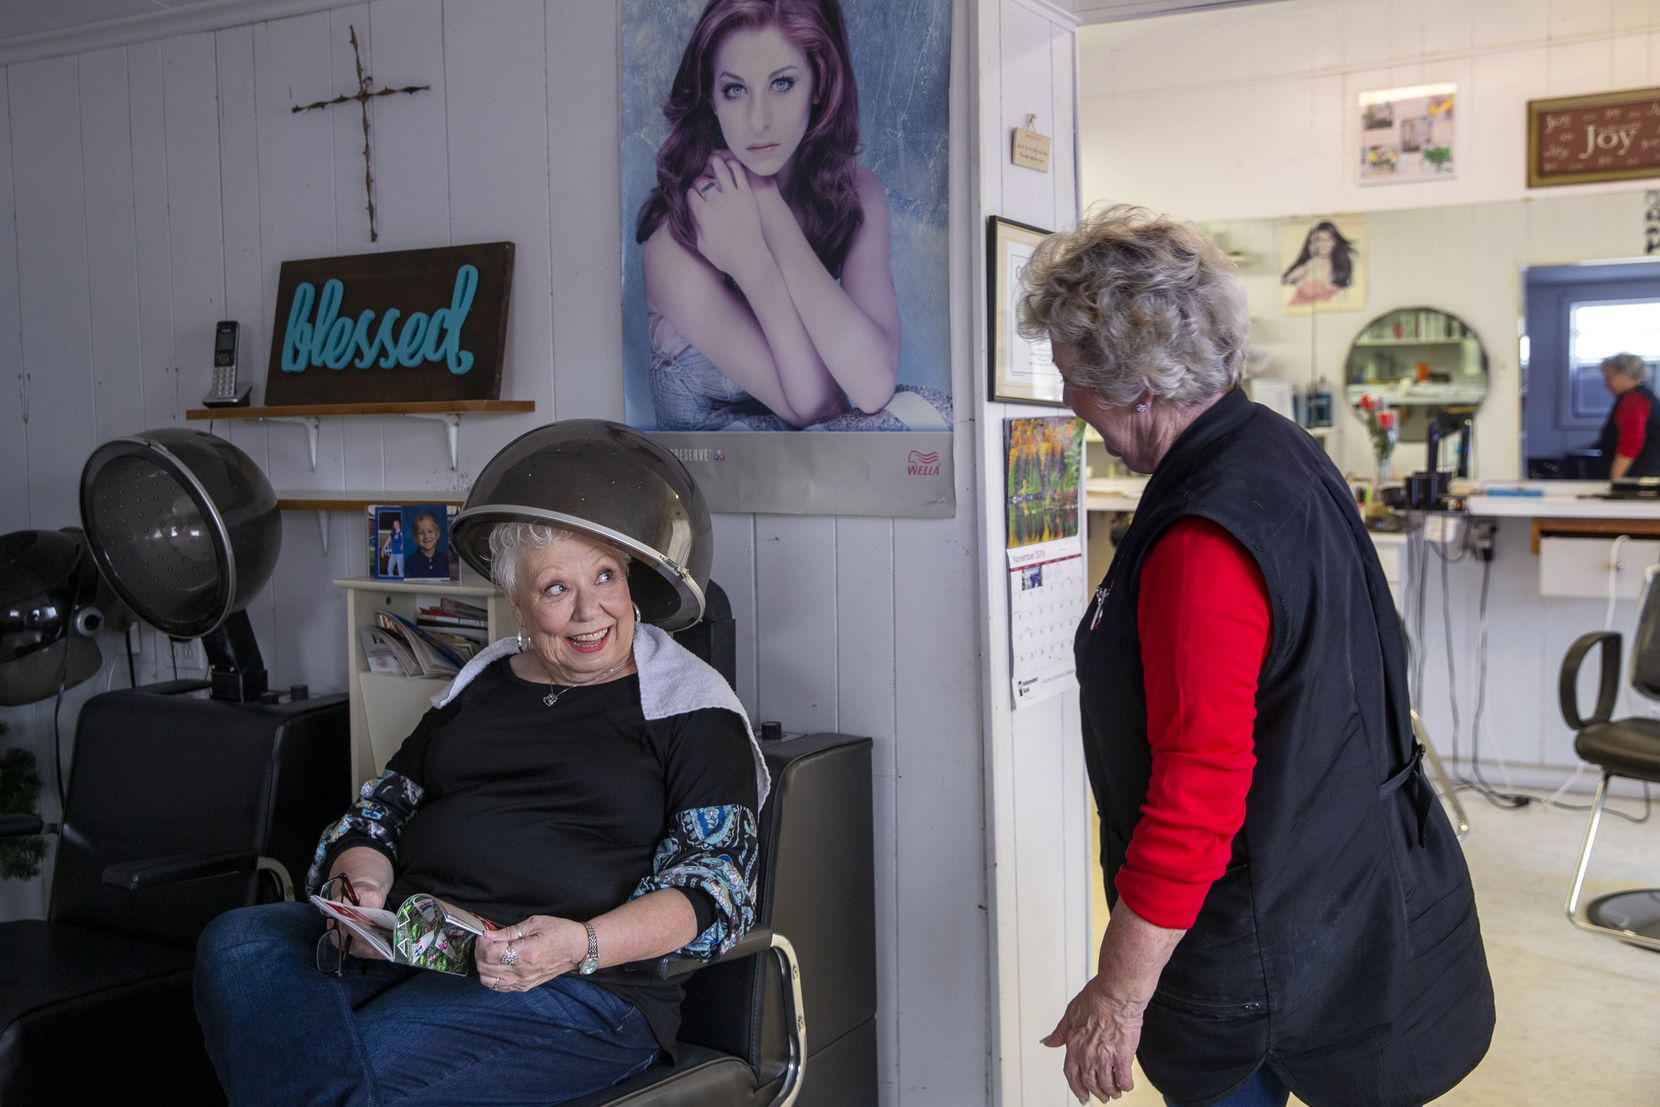 O'Neal sets client Joyce Farquhar into a hair dryer chair. O'Neal said she's not sure how much longer the shop will remain open if a developer goes through with plans to re-purpose her building.